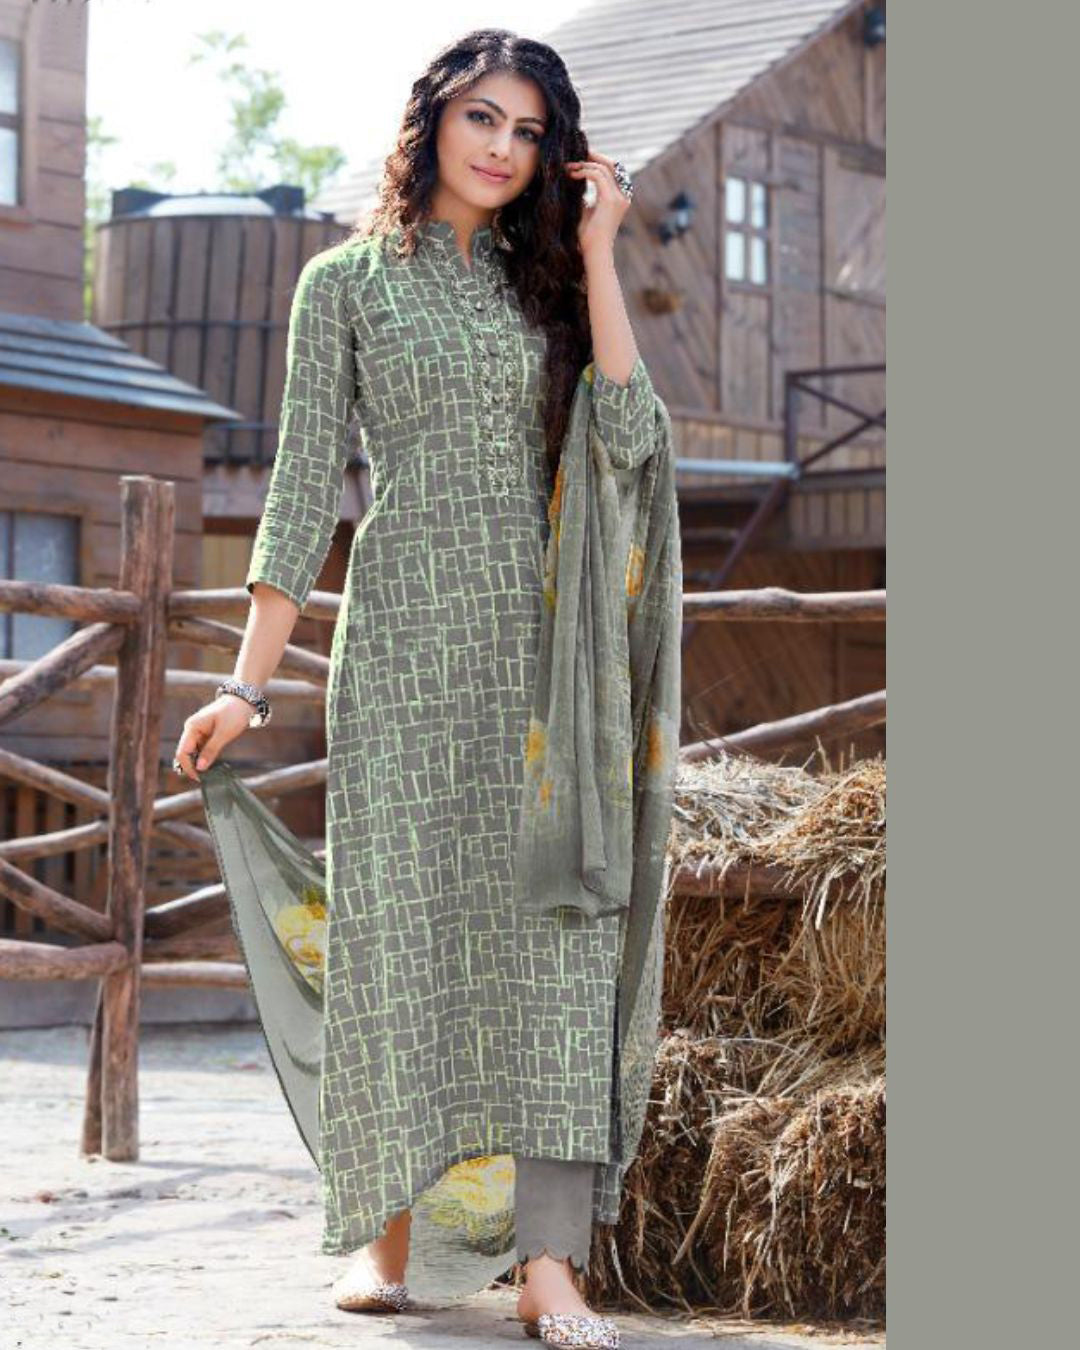 Green-Gray Cotton Printed Suit Fabric Set with Neck Embroidery